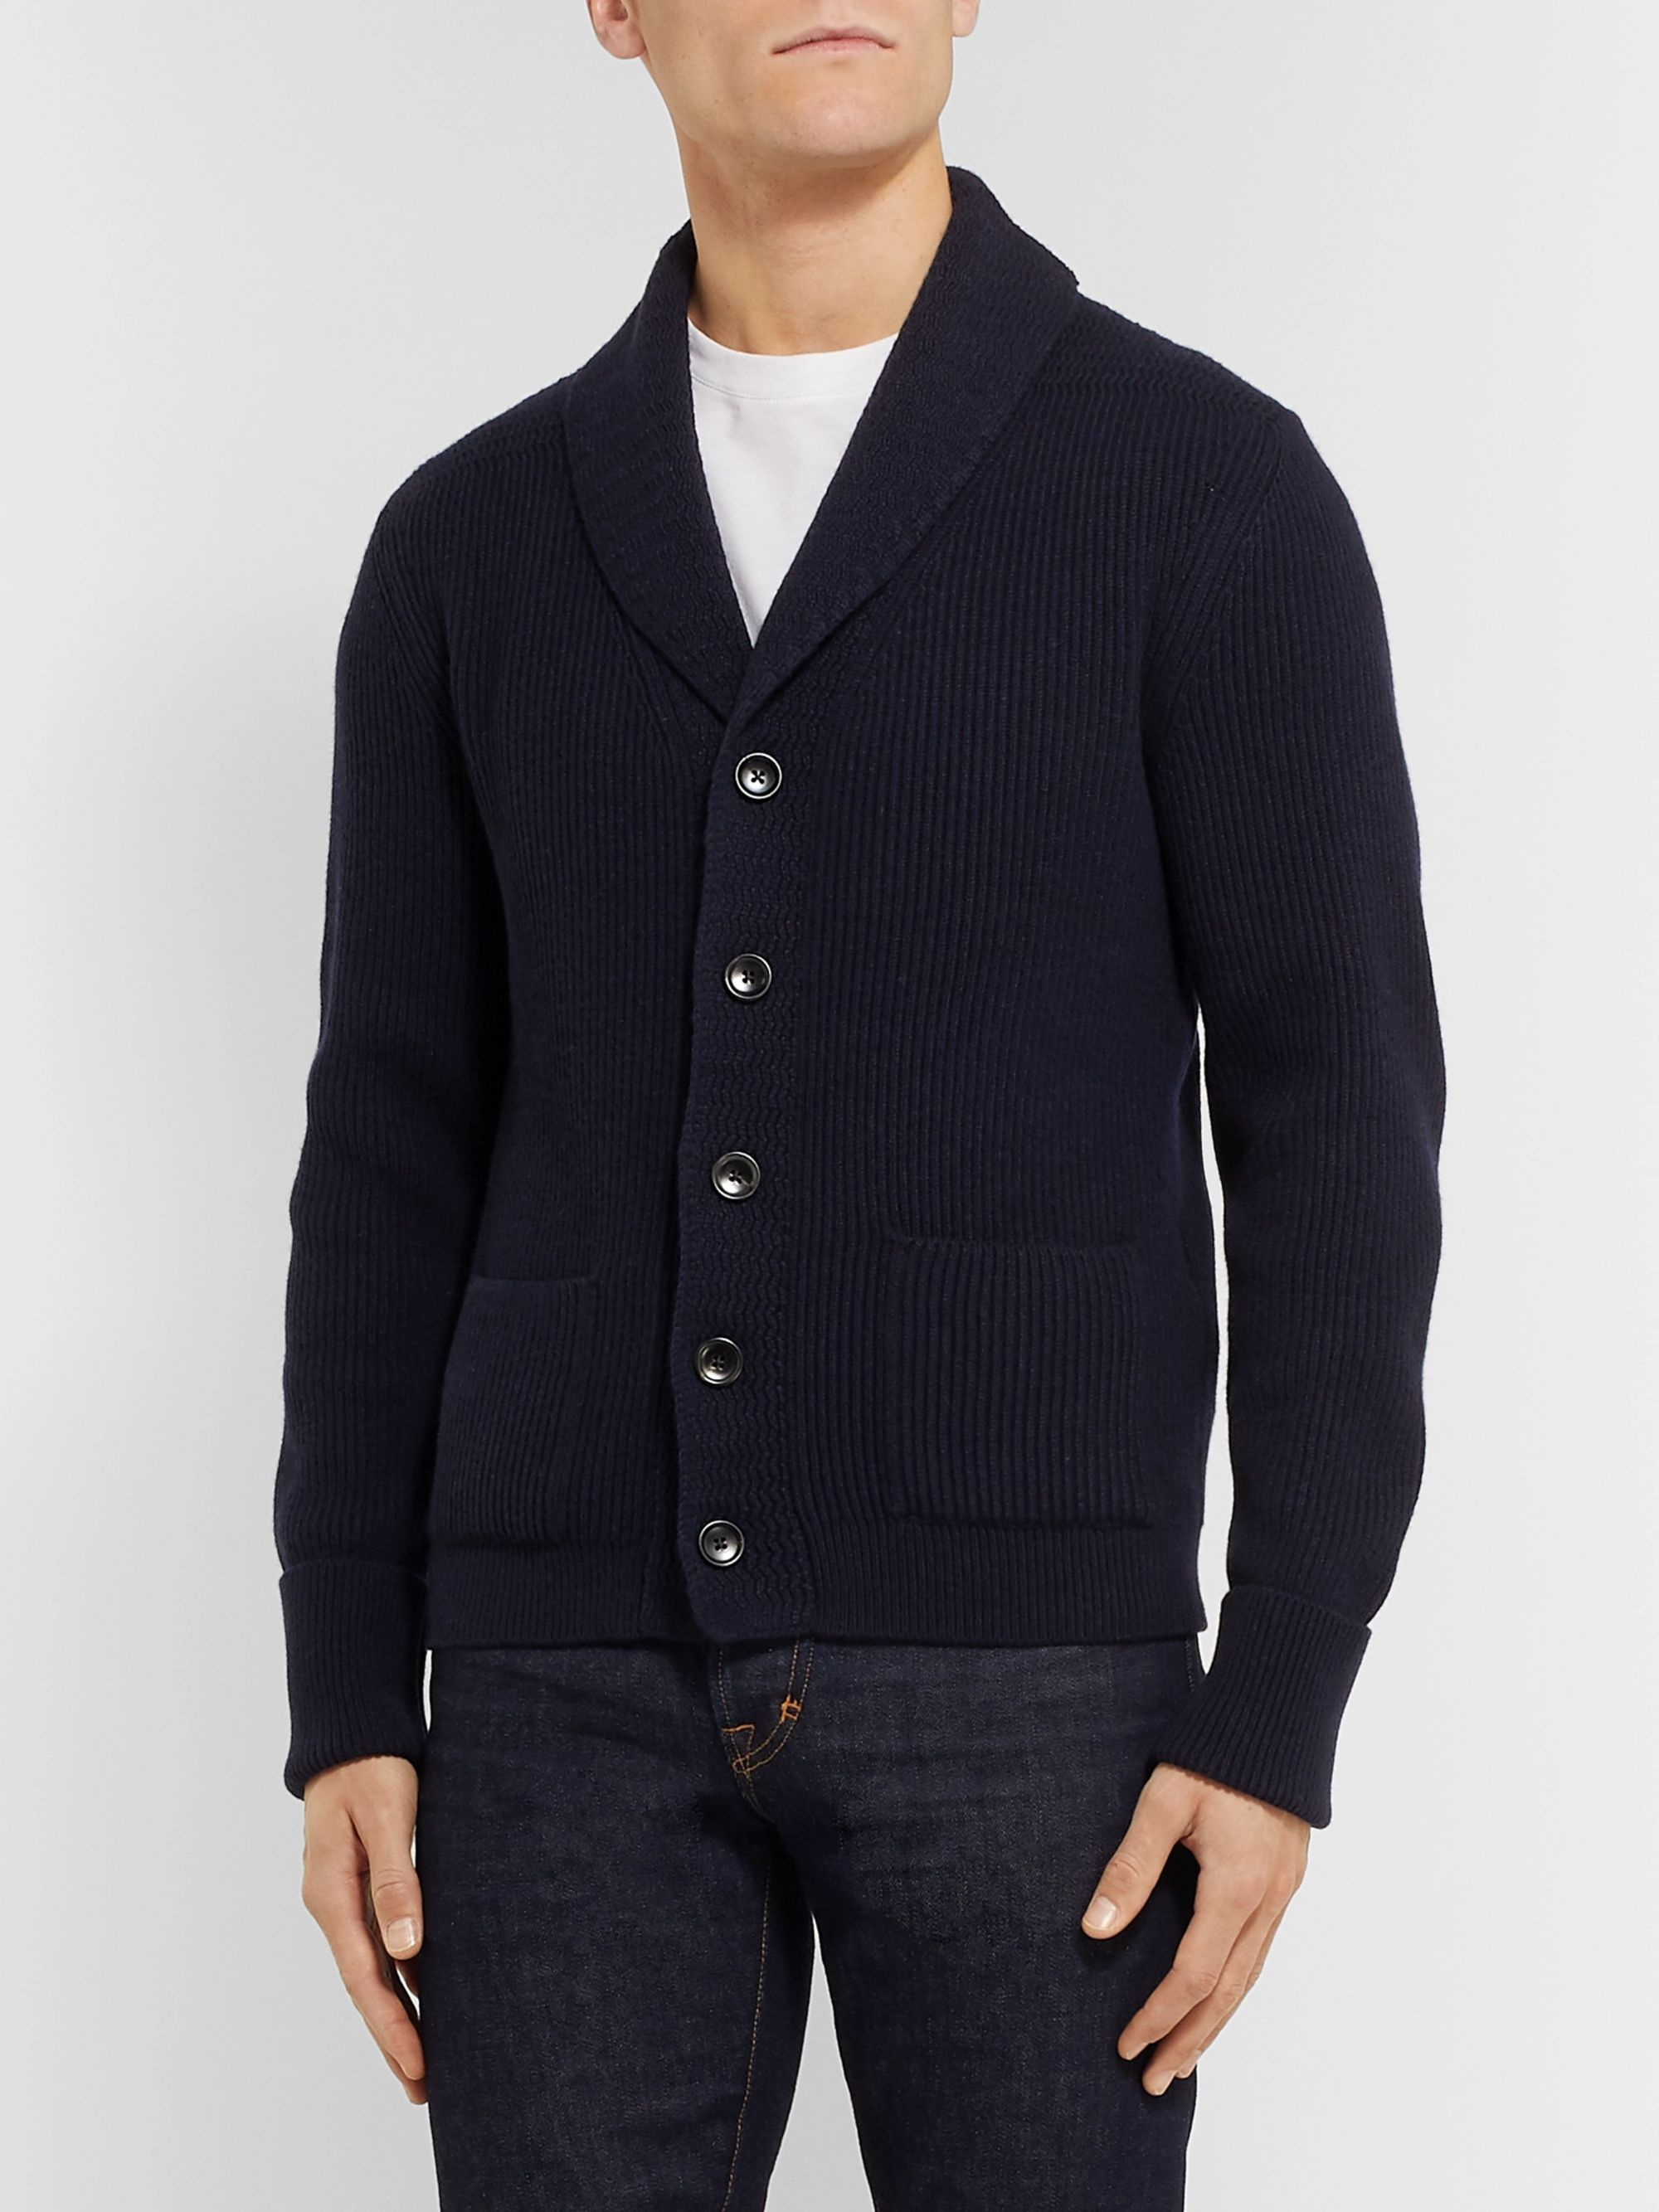 TOM FORD Shawl-Collar Cashmere Cardigan